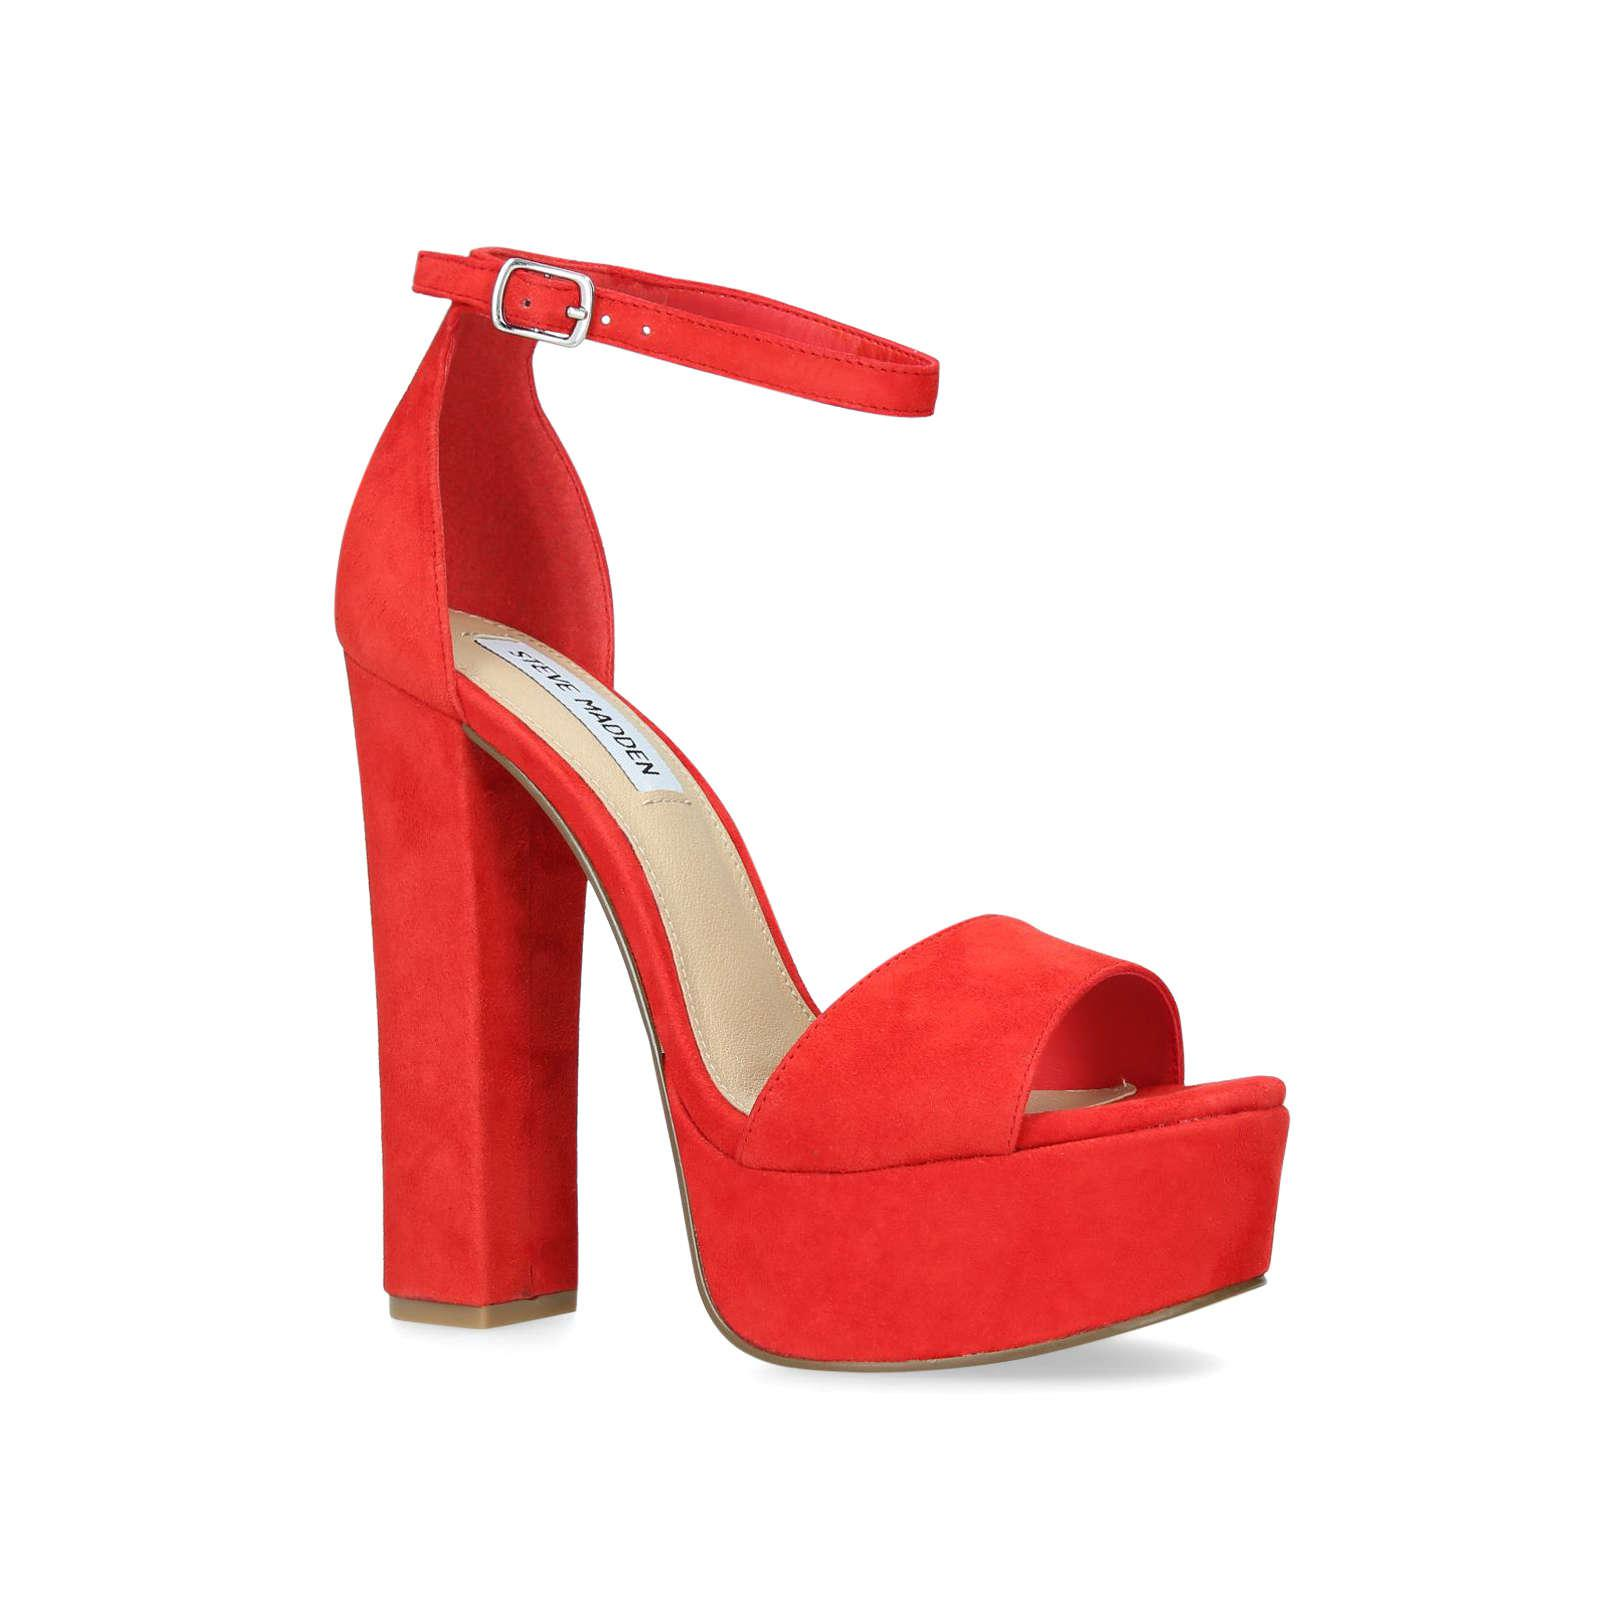 55301bc674a8 Steve Madden Gonzo in Red - Lyst